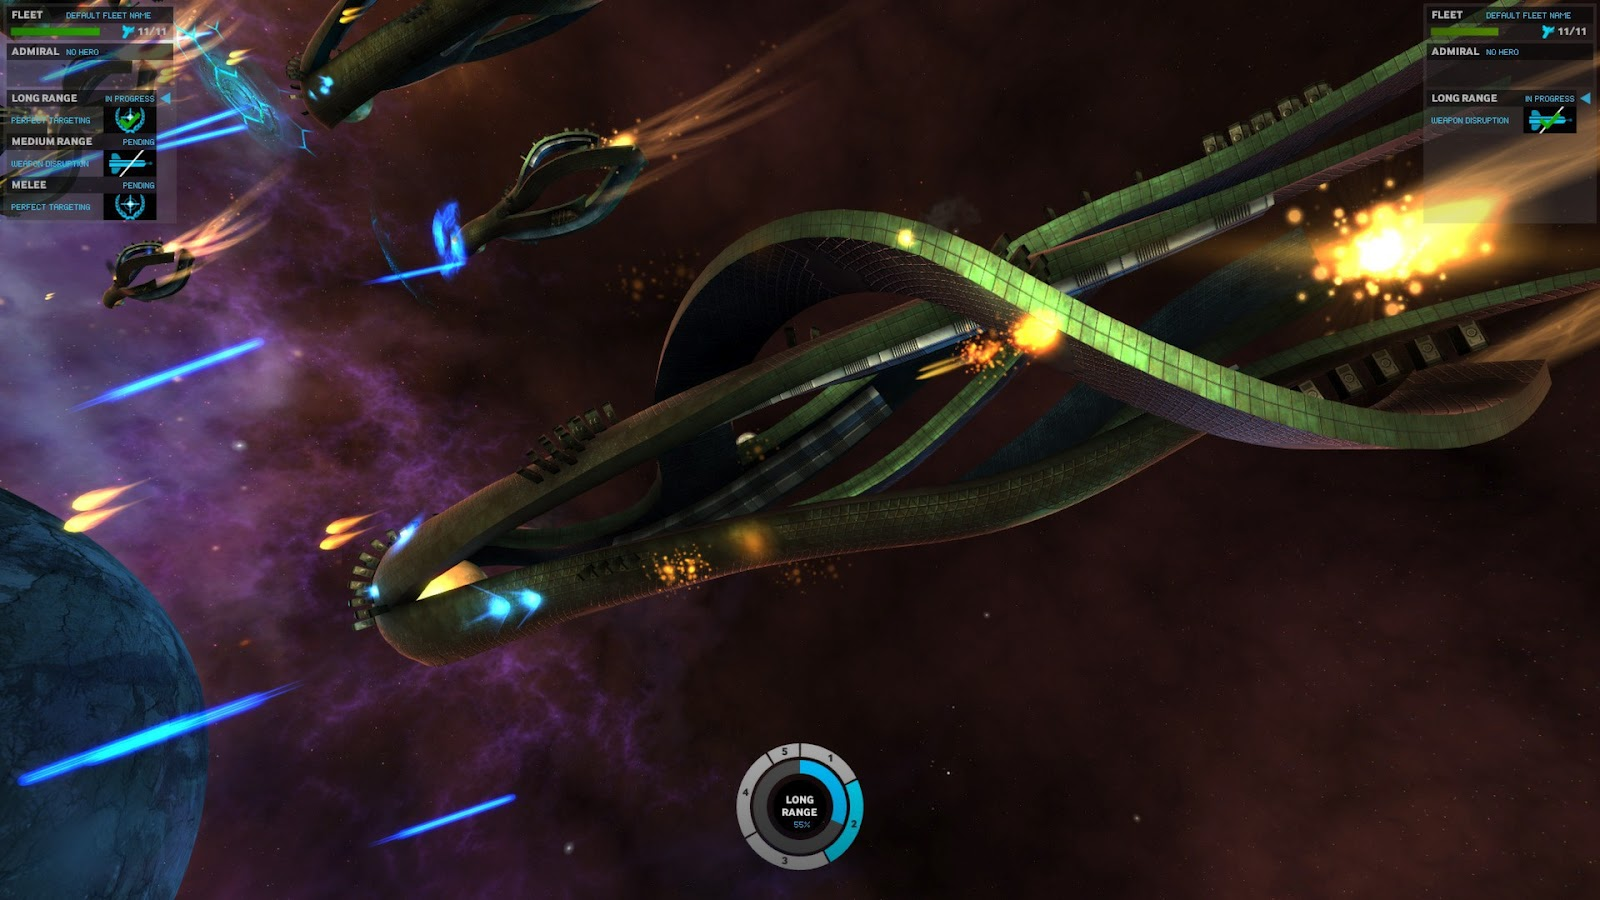 Endless Space full game free pc, download, play  Endless